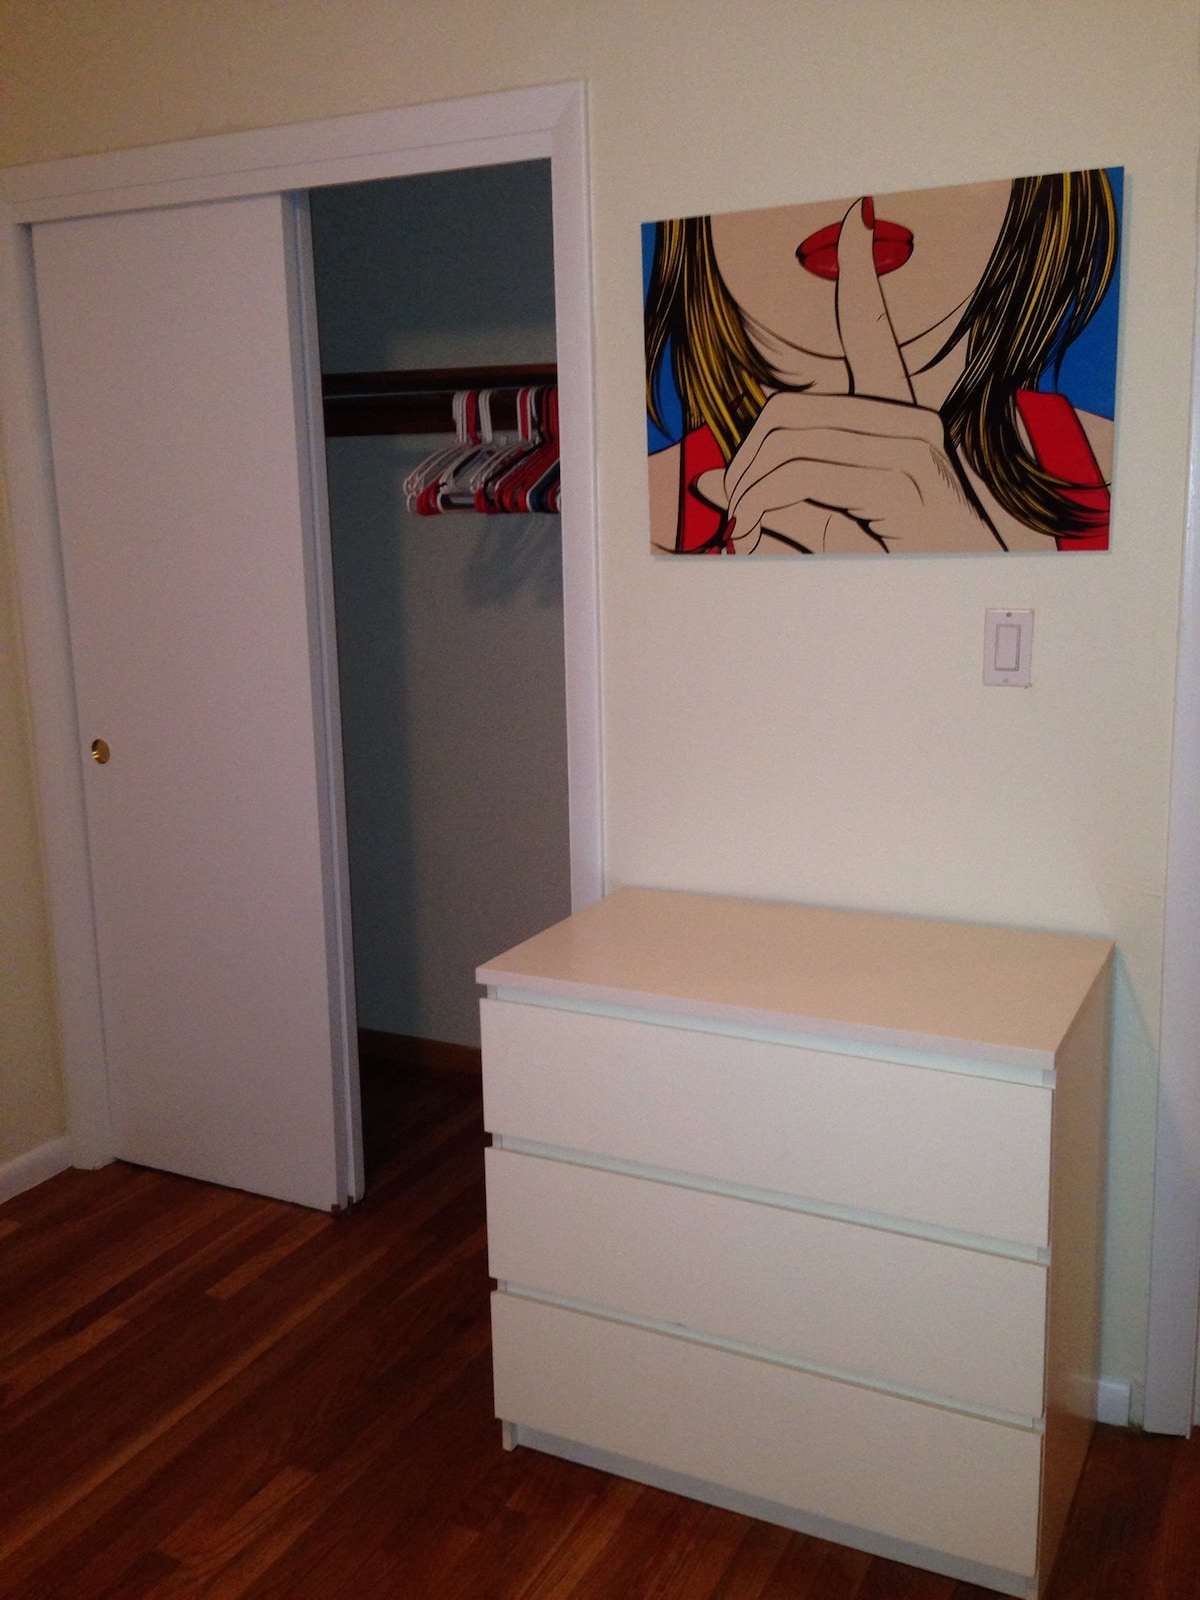 Large closet space plus dresser for additional clothes storage